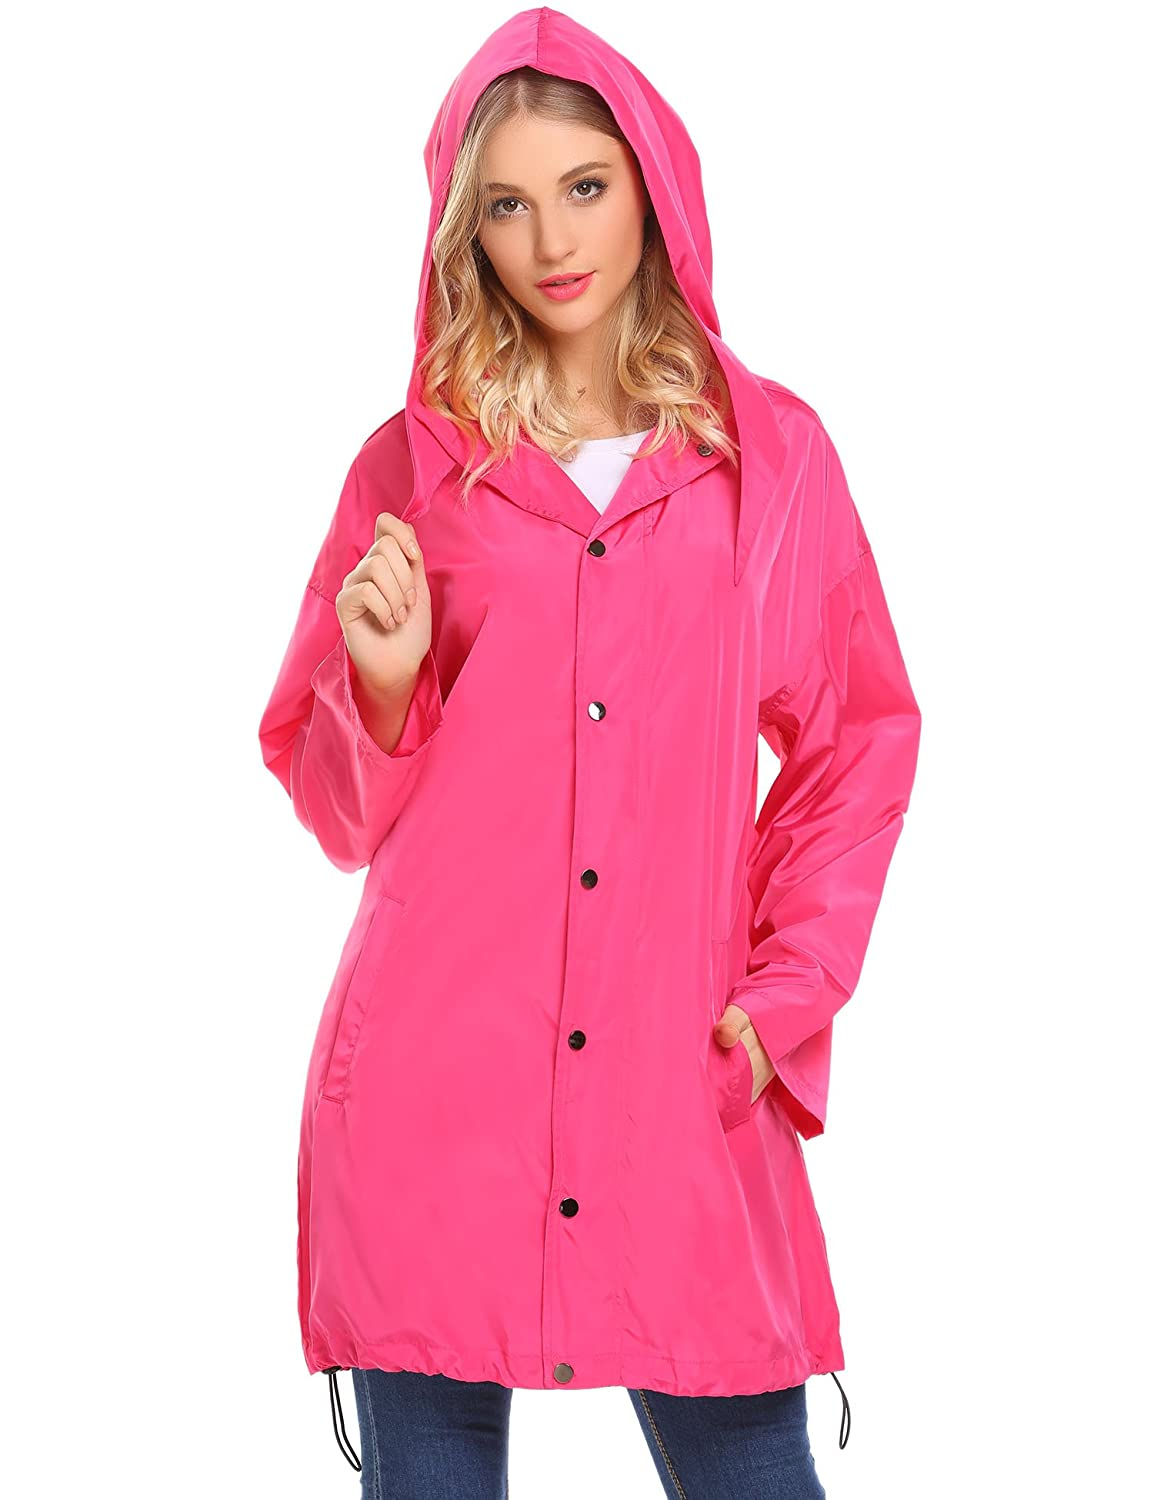 9ab3a4138d1 Amazon.com  Unibelle Waterproof Lightweight Rain Jacket Active Outdoor  Hooded Raincoat for Womens  Clothing